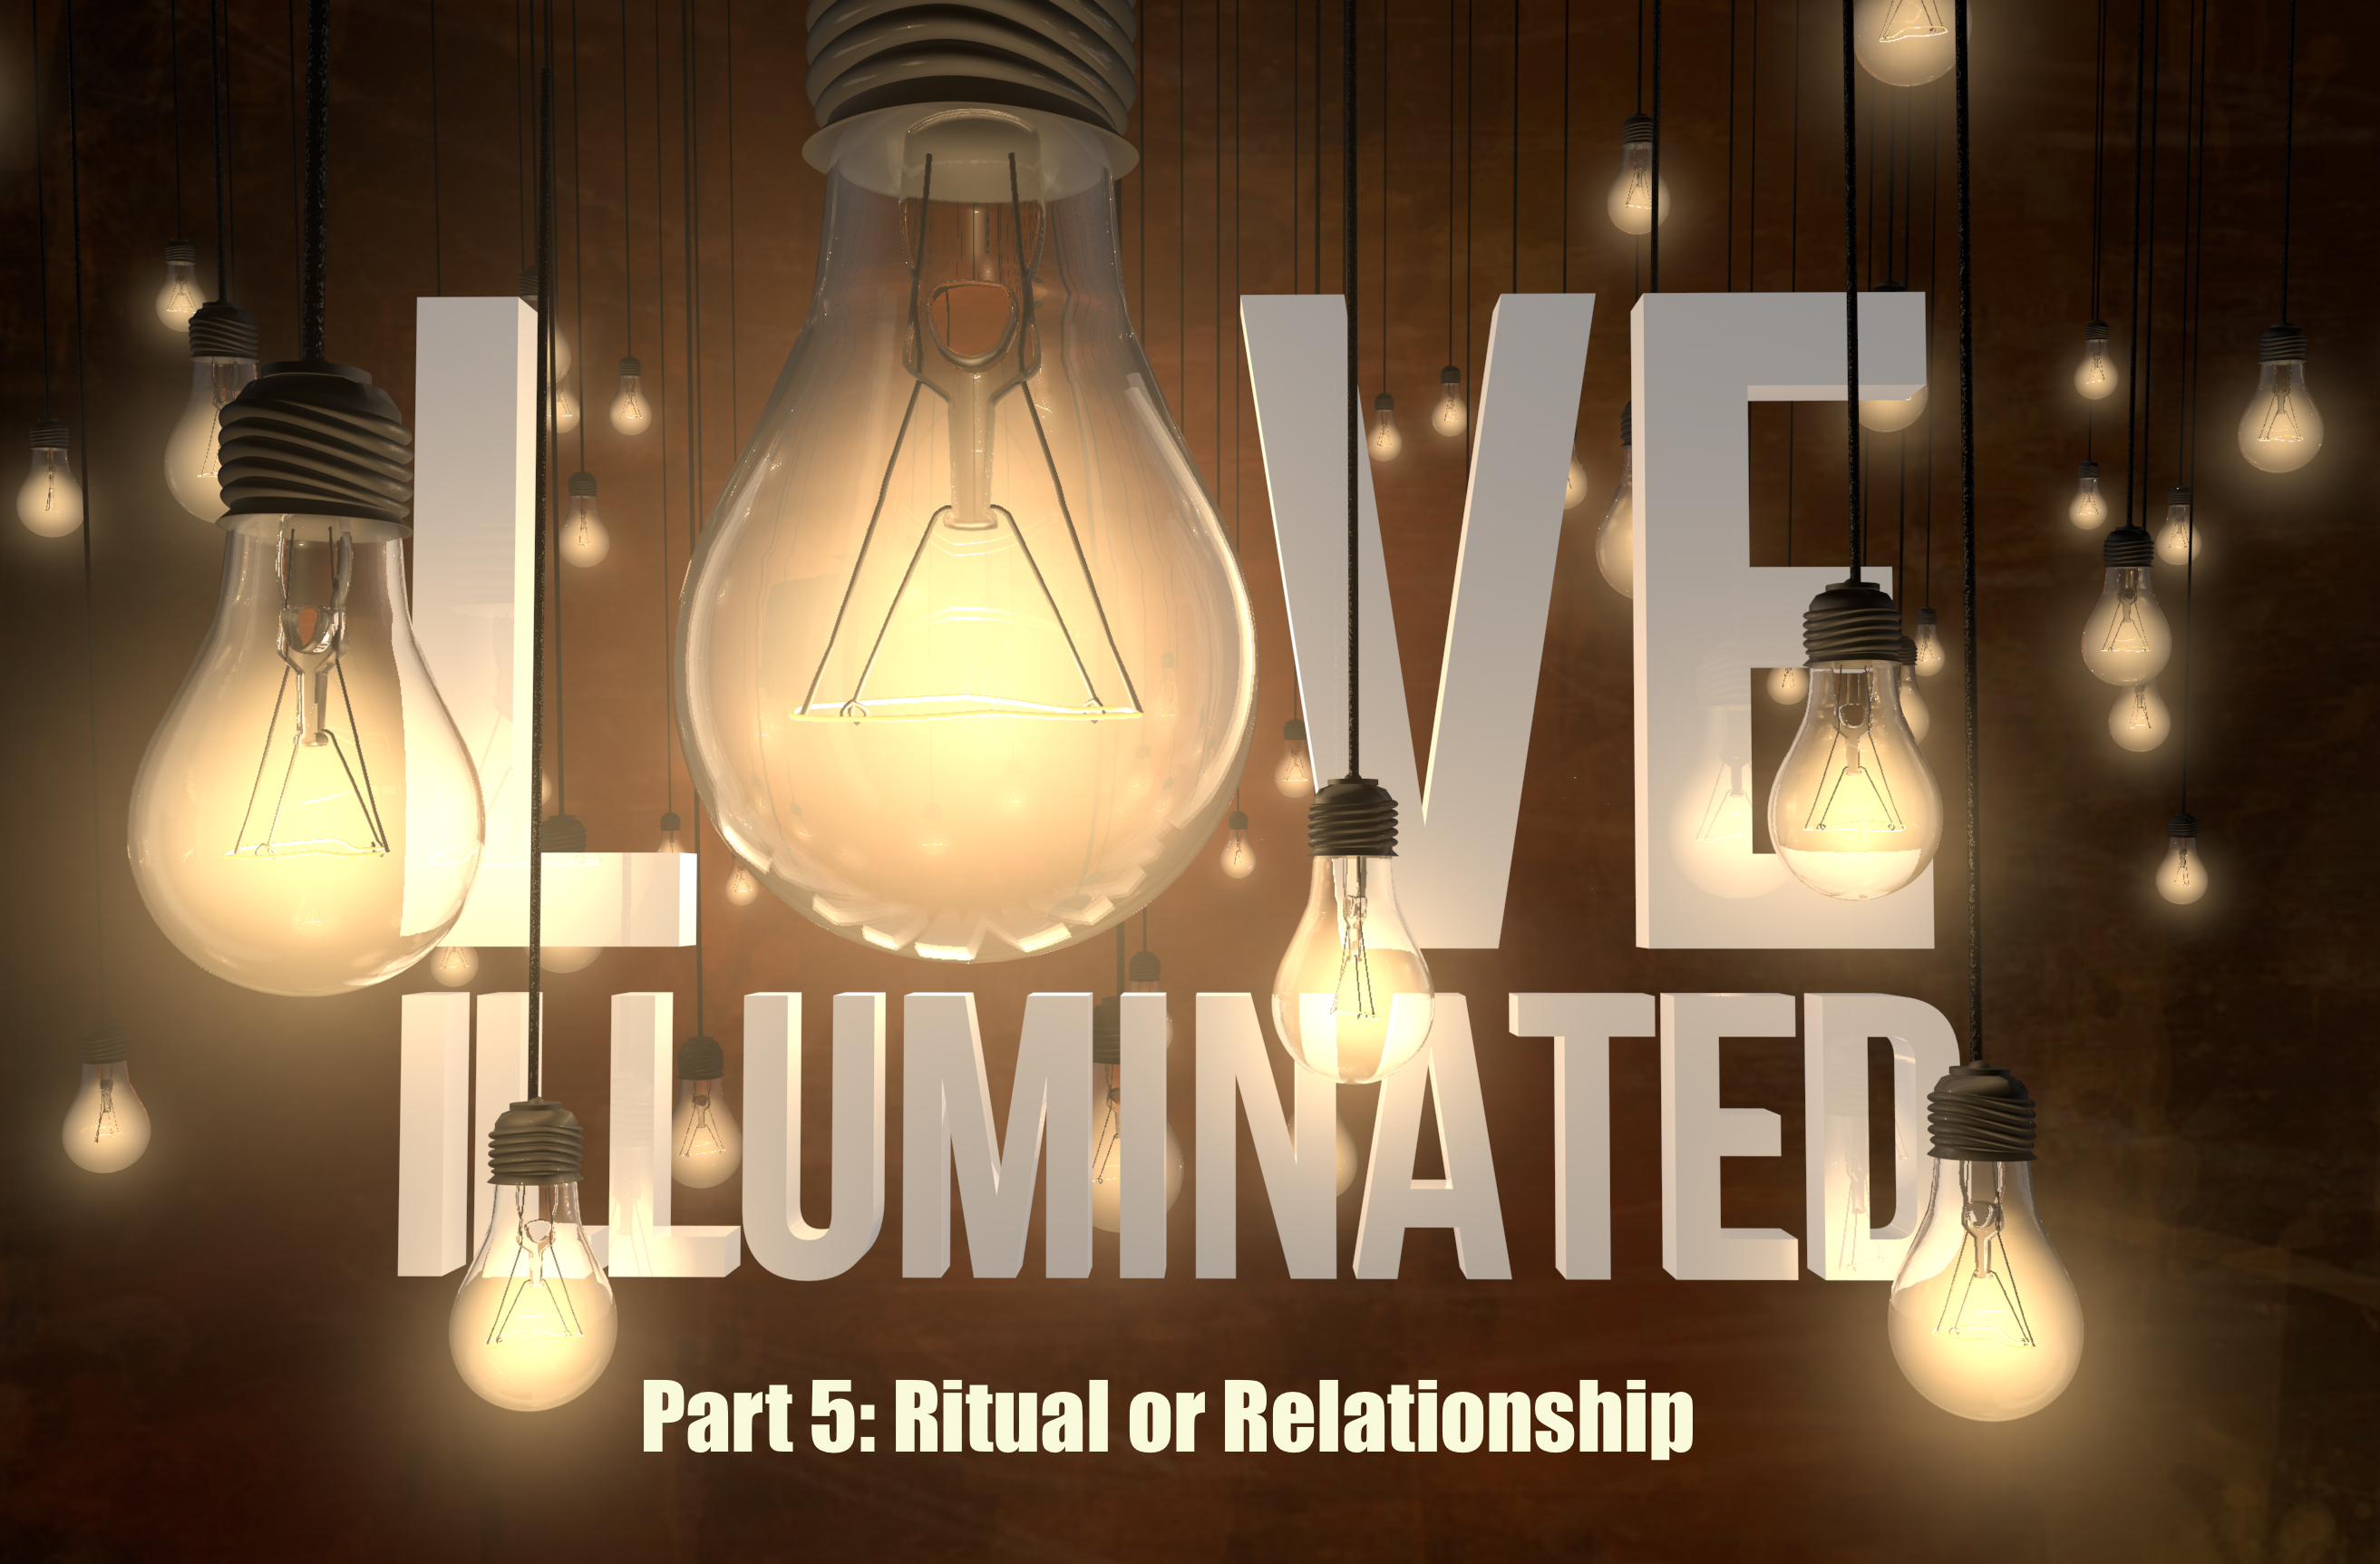 Love Illuminated, Part 5: Ritual or Relationship